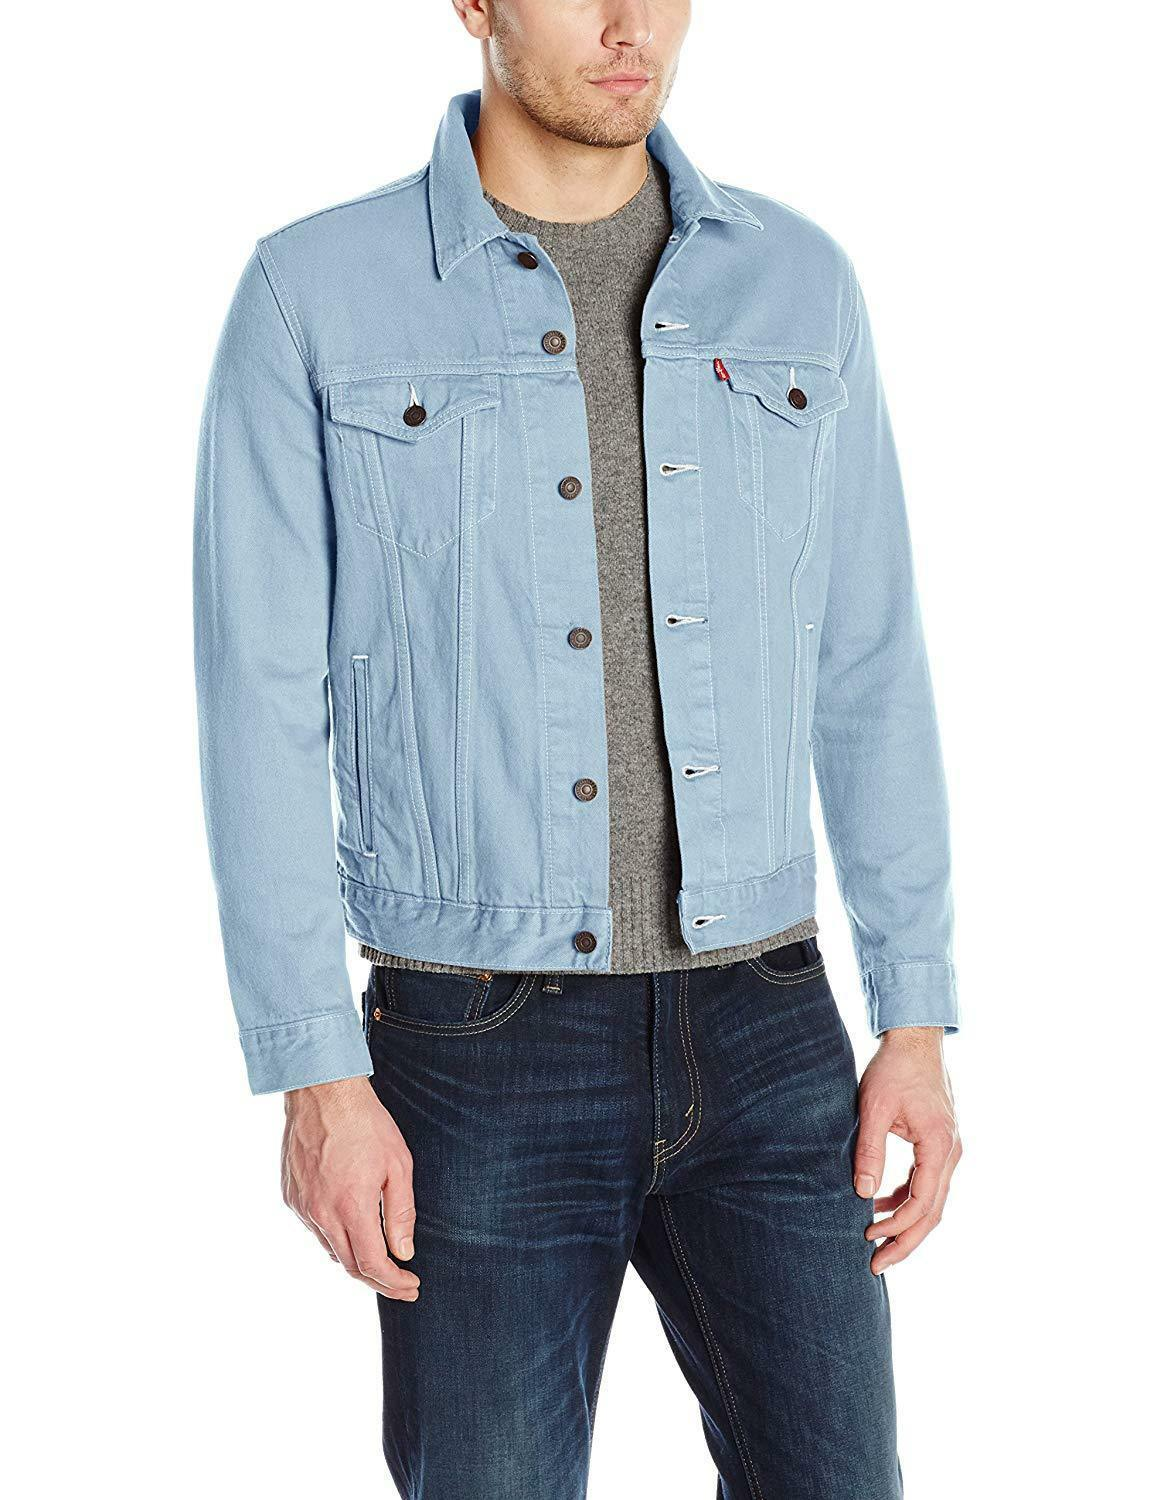 Levi's Men's Multi Pocket Button Up Denim Trucker Jacket Sky Blue 723340277